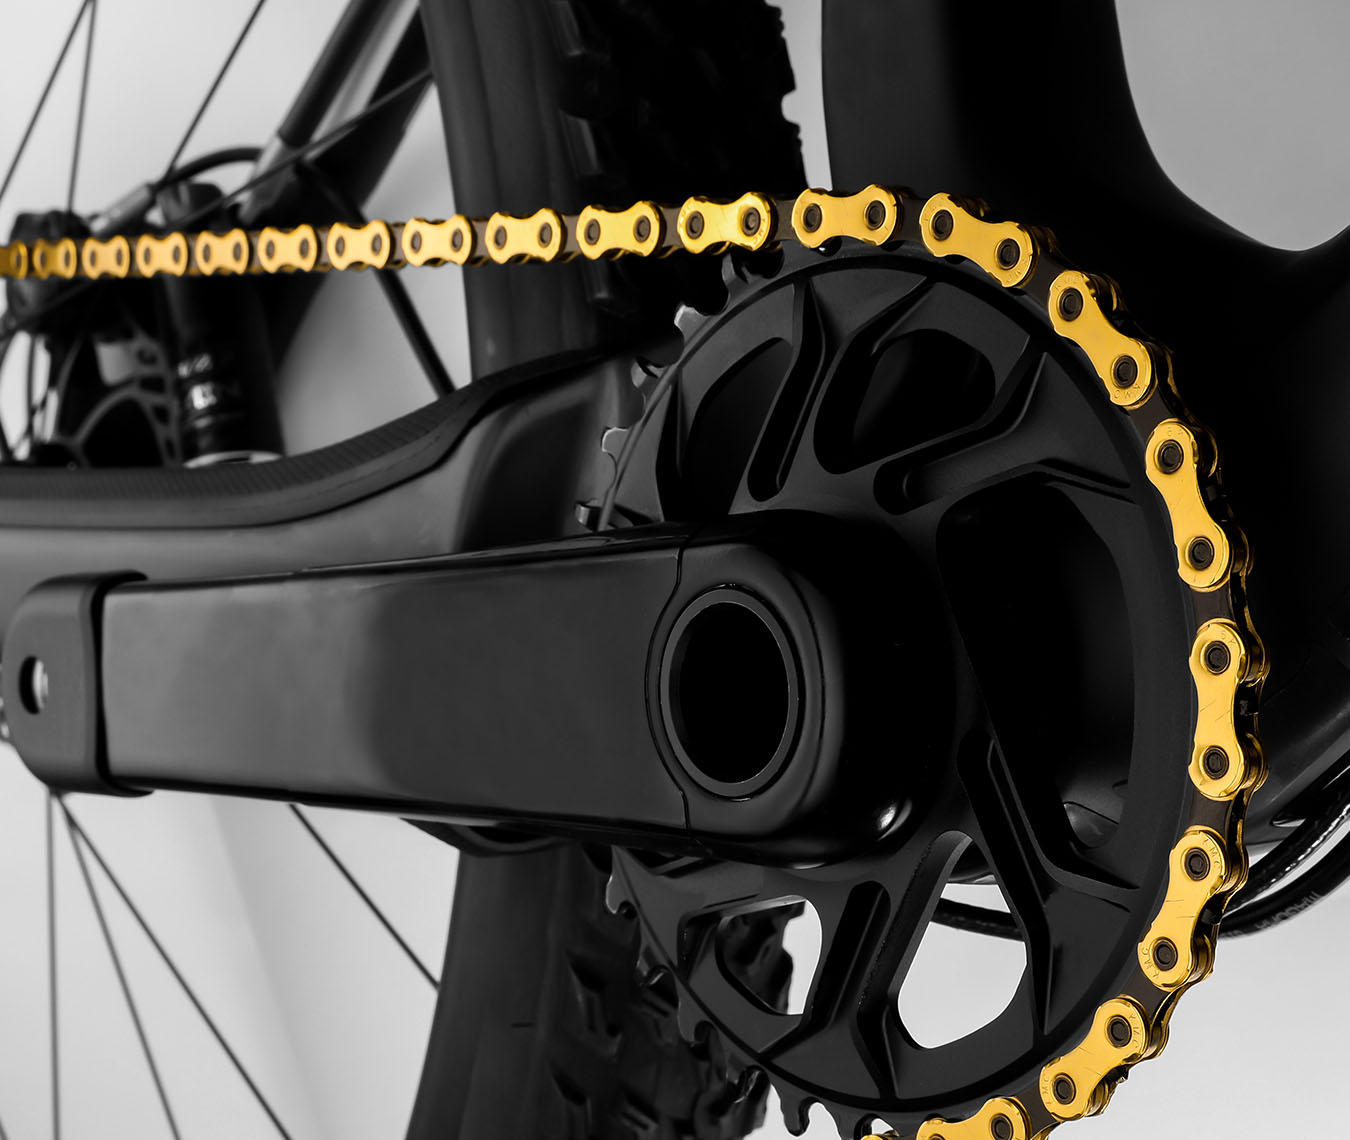 12 Speed Bicycle chain